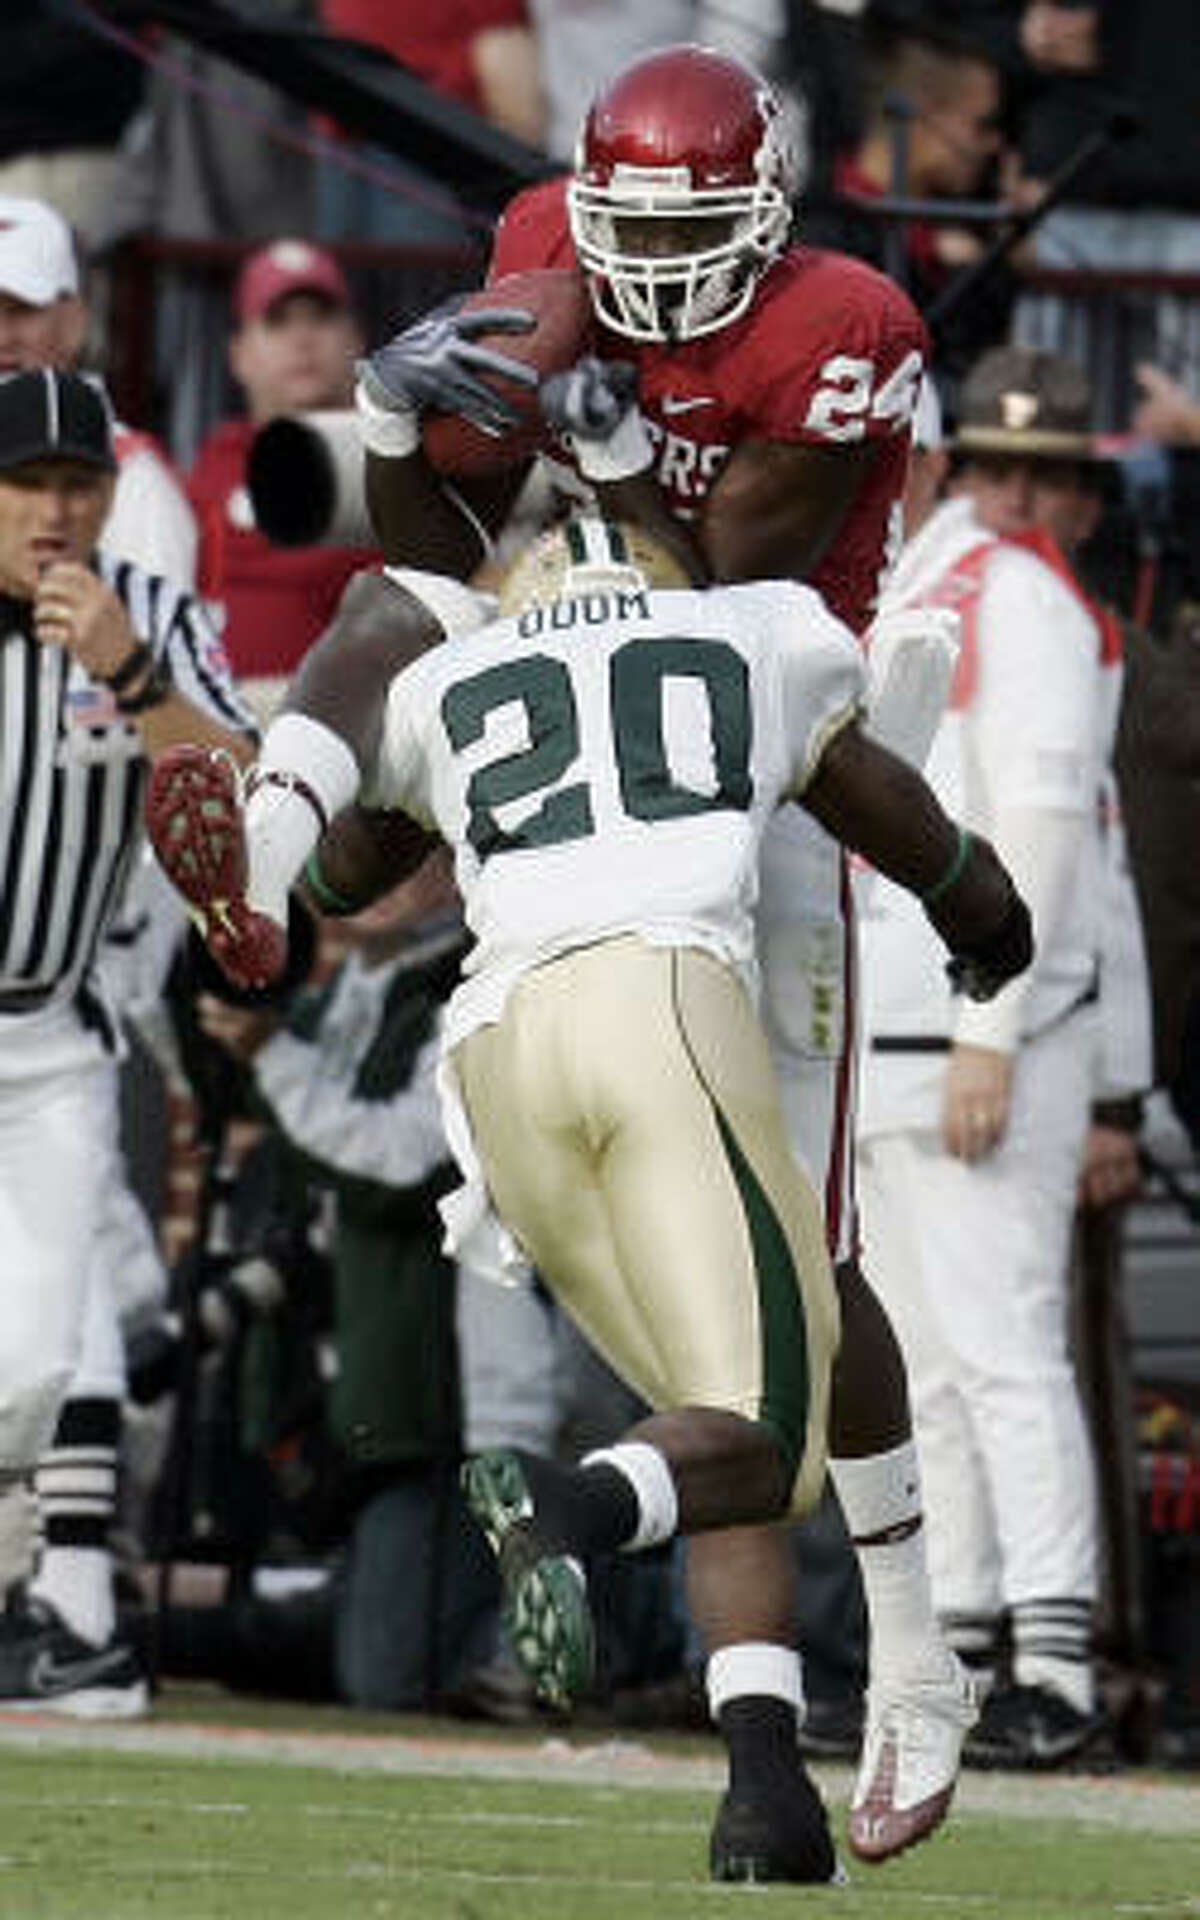 Baylor's Clifton Odom hits Oklahoma receiver Dejuan Miller, knocking the ball out of his hands and causing an incomplete pass in the fourth quarter in Norman, Okla.